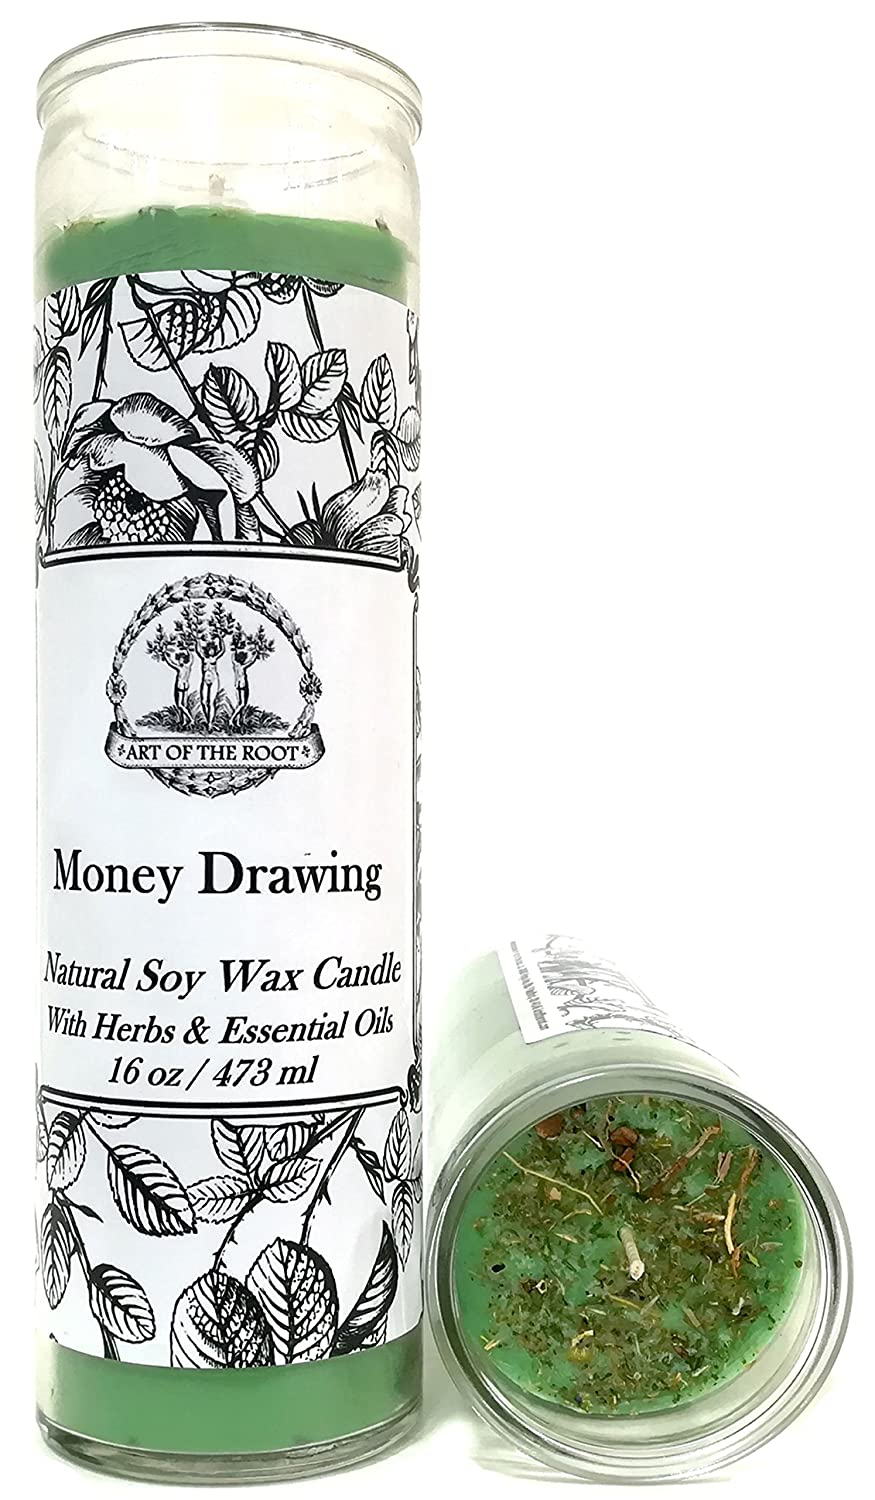 Art of the Root Money Drawing Scented 7 Day SOY Herbal Spell Candle (Fixed) for Wealth, Financial Security, Propserity (Wiccan, Pagan, Hoodoo, Magick) Ltd.